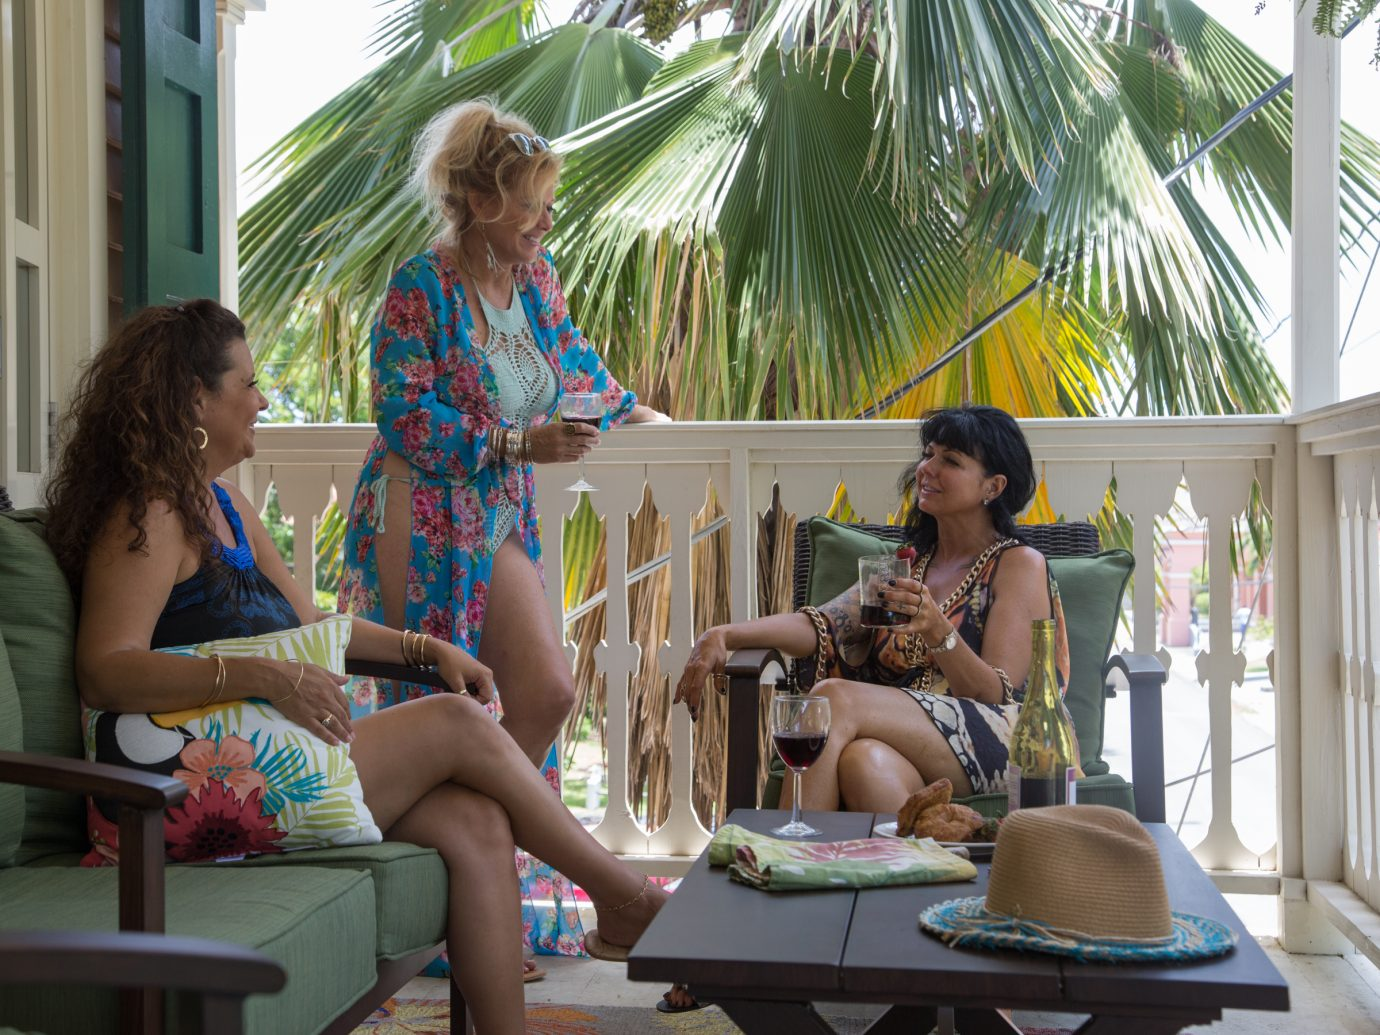 women chatting with eachother on a porch